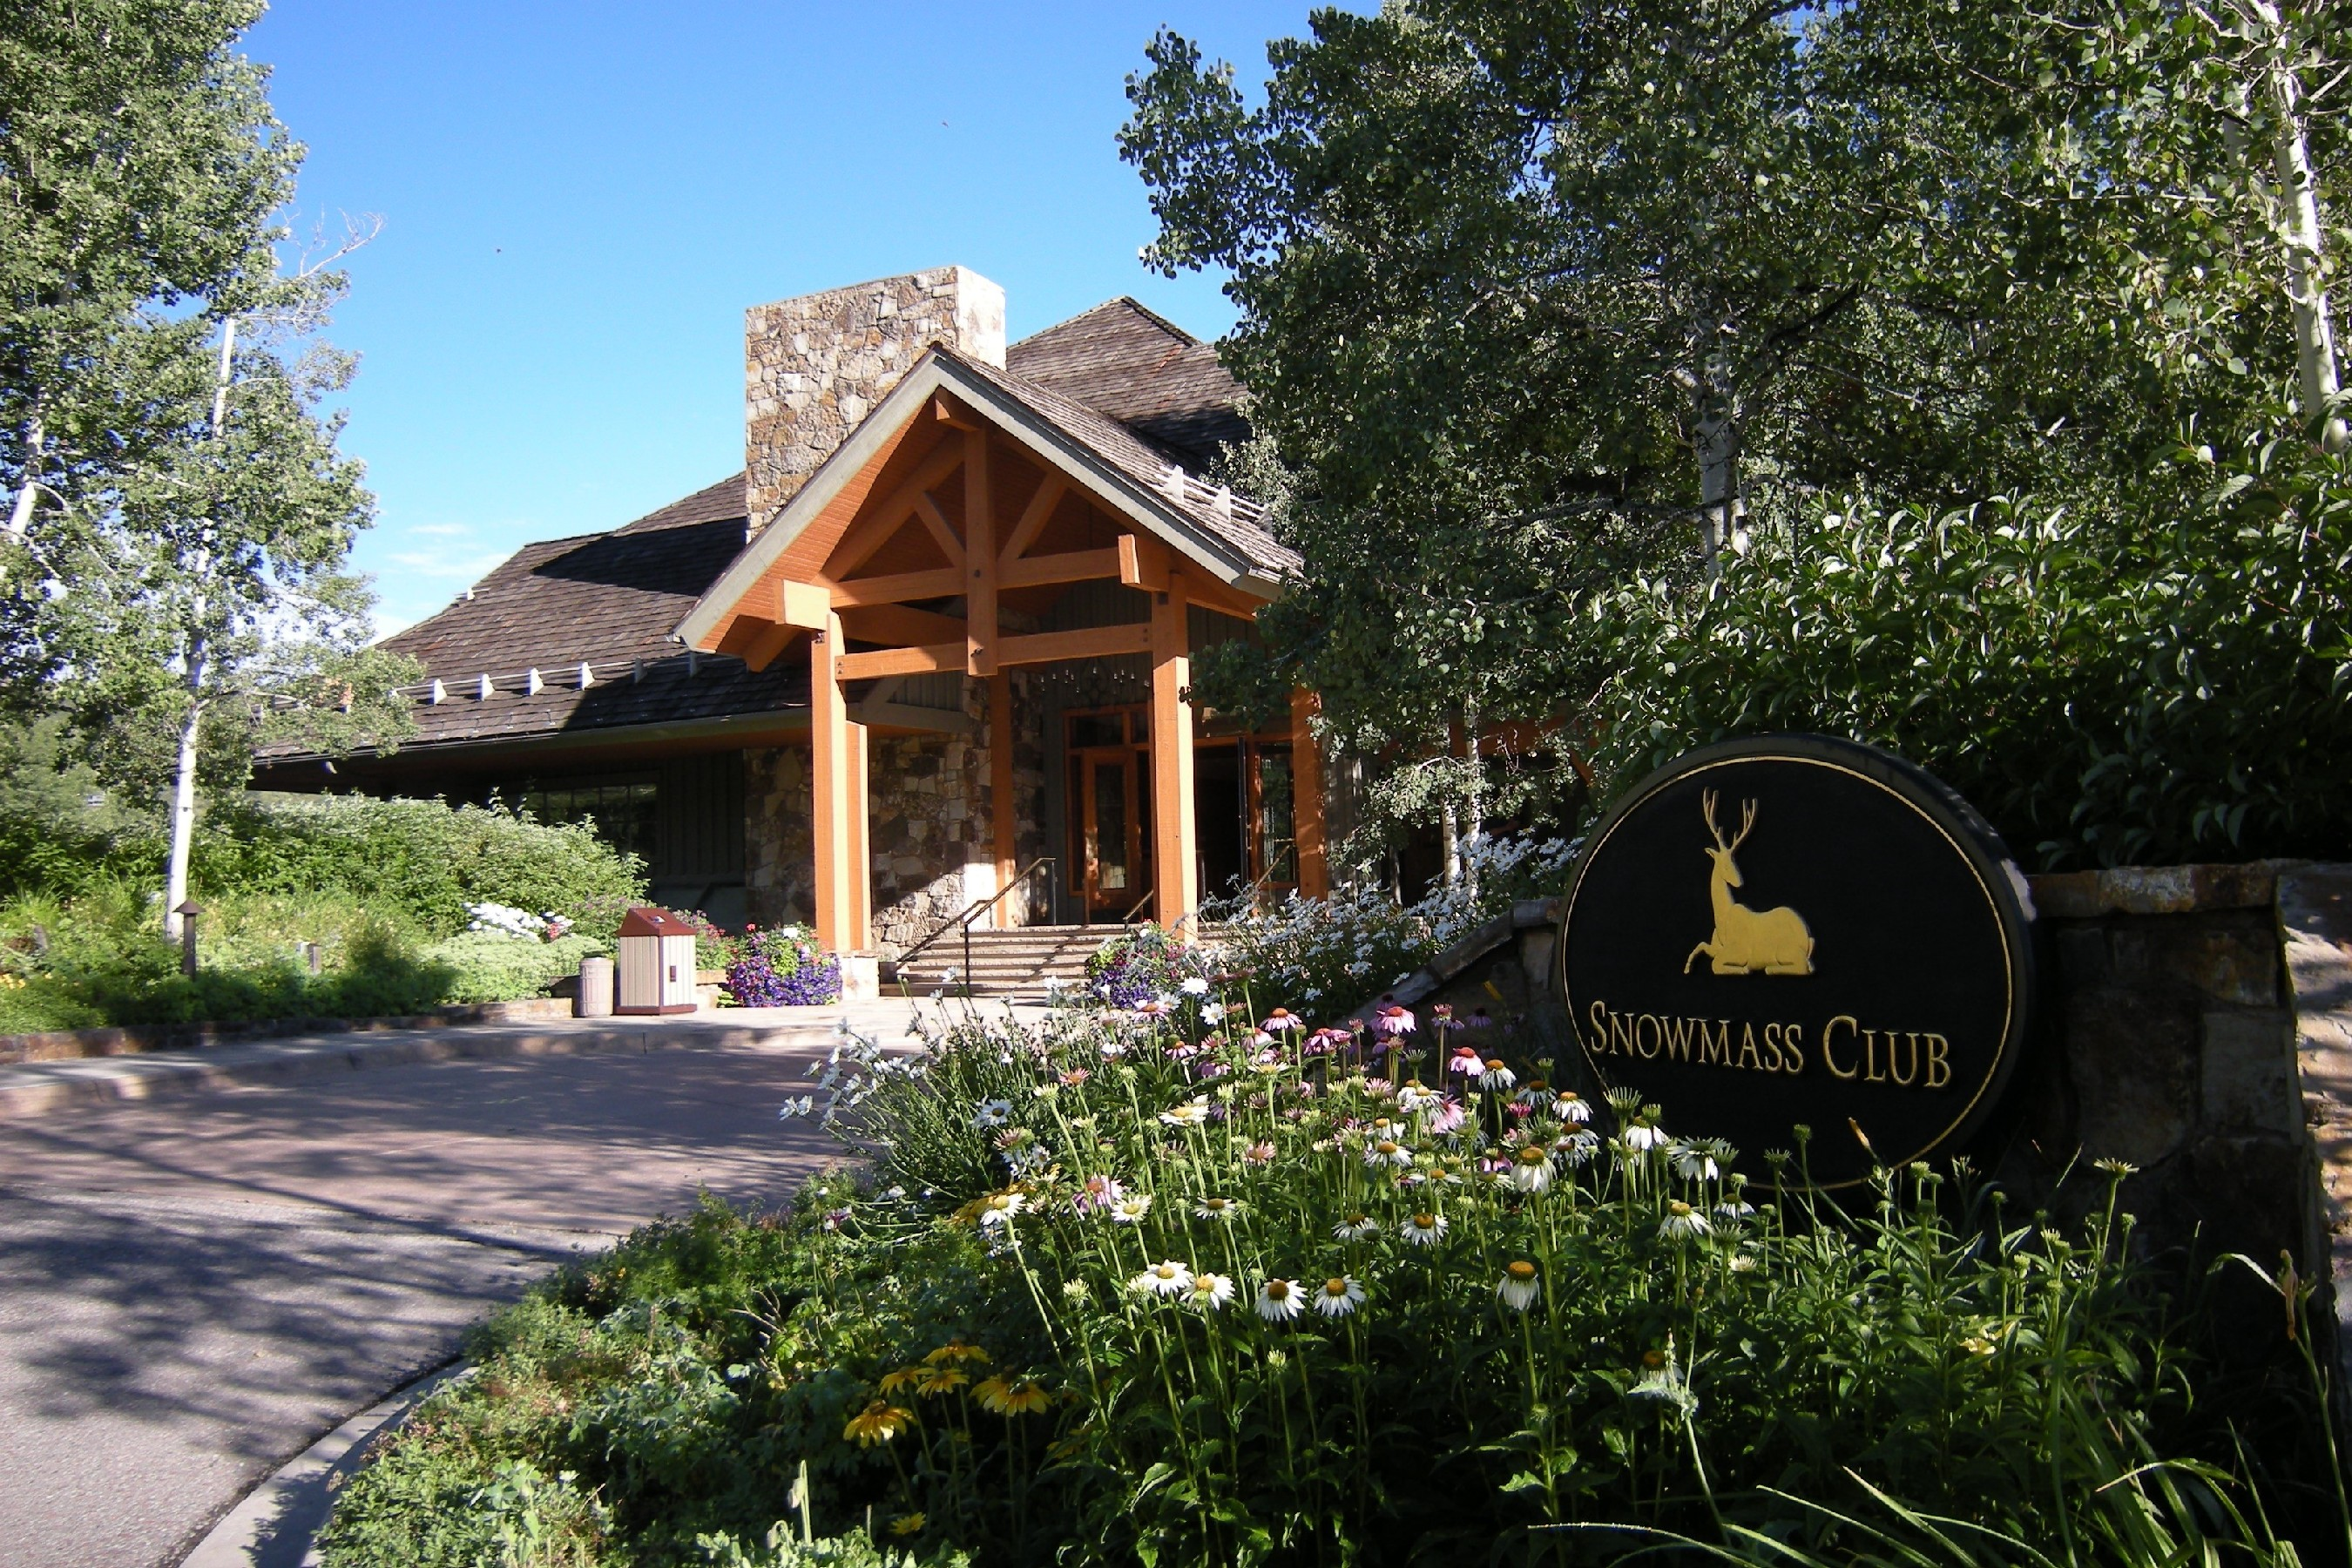 Fractional Ownership for Sale at Snowmass Club Fractional Interest 3-68 0239 Snowmass Club Circle Unit 123 Snowmass Village, Colorado, 81615 United States